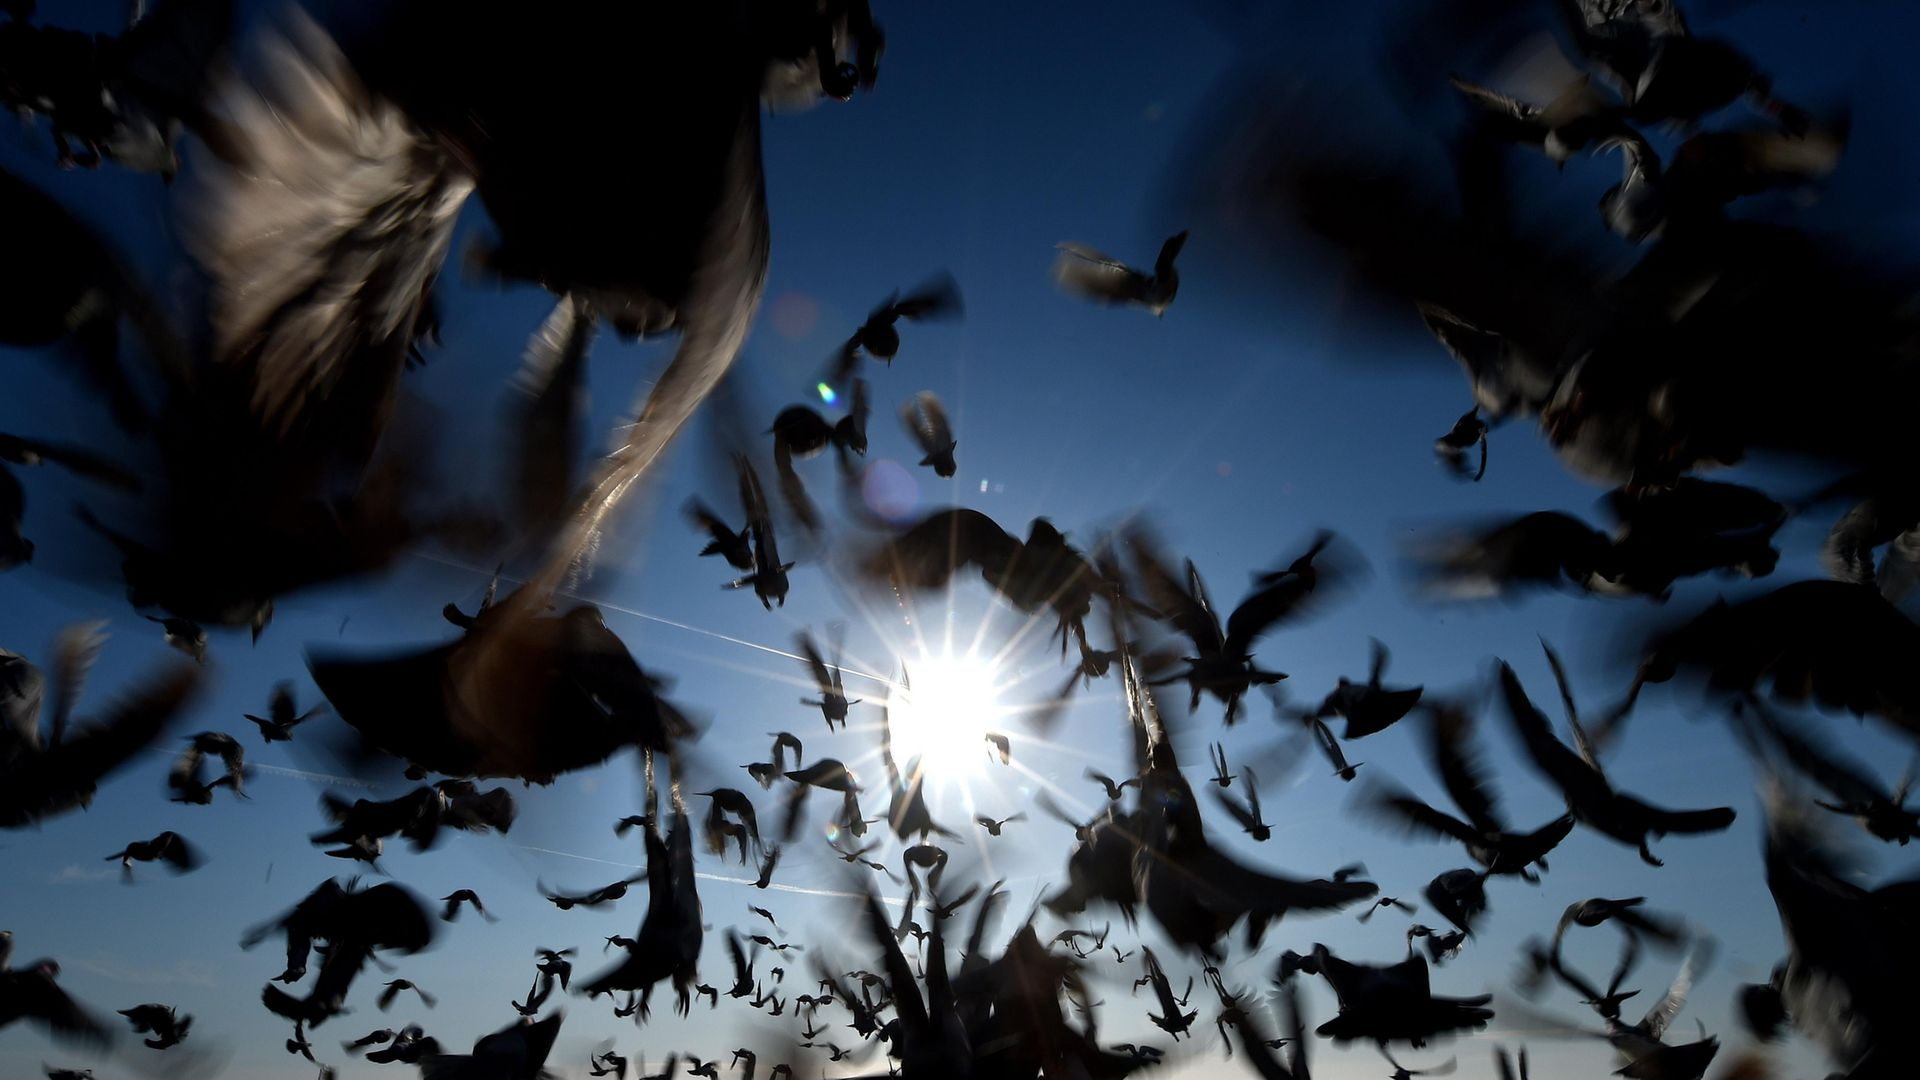 Racing pigeons in all their glory (question two) - Credit: Owen Humphreys/PA Wire